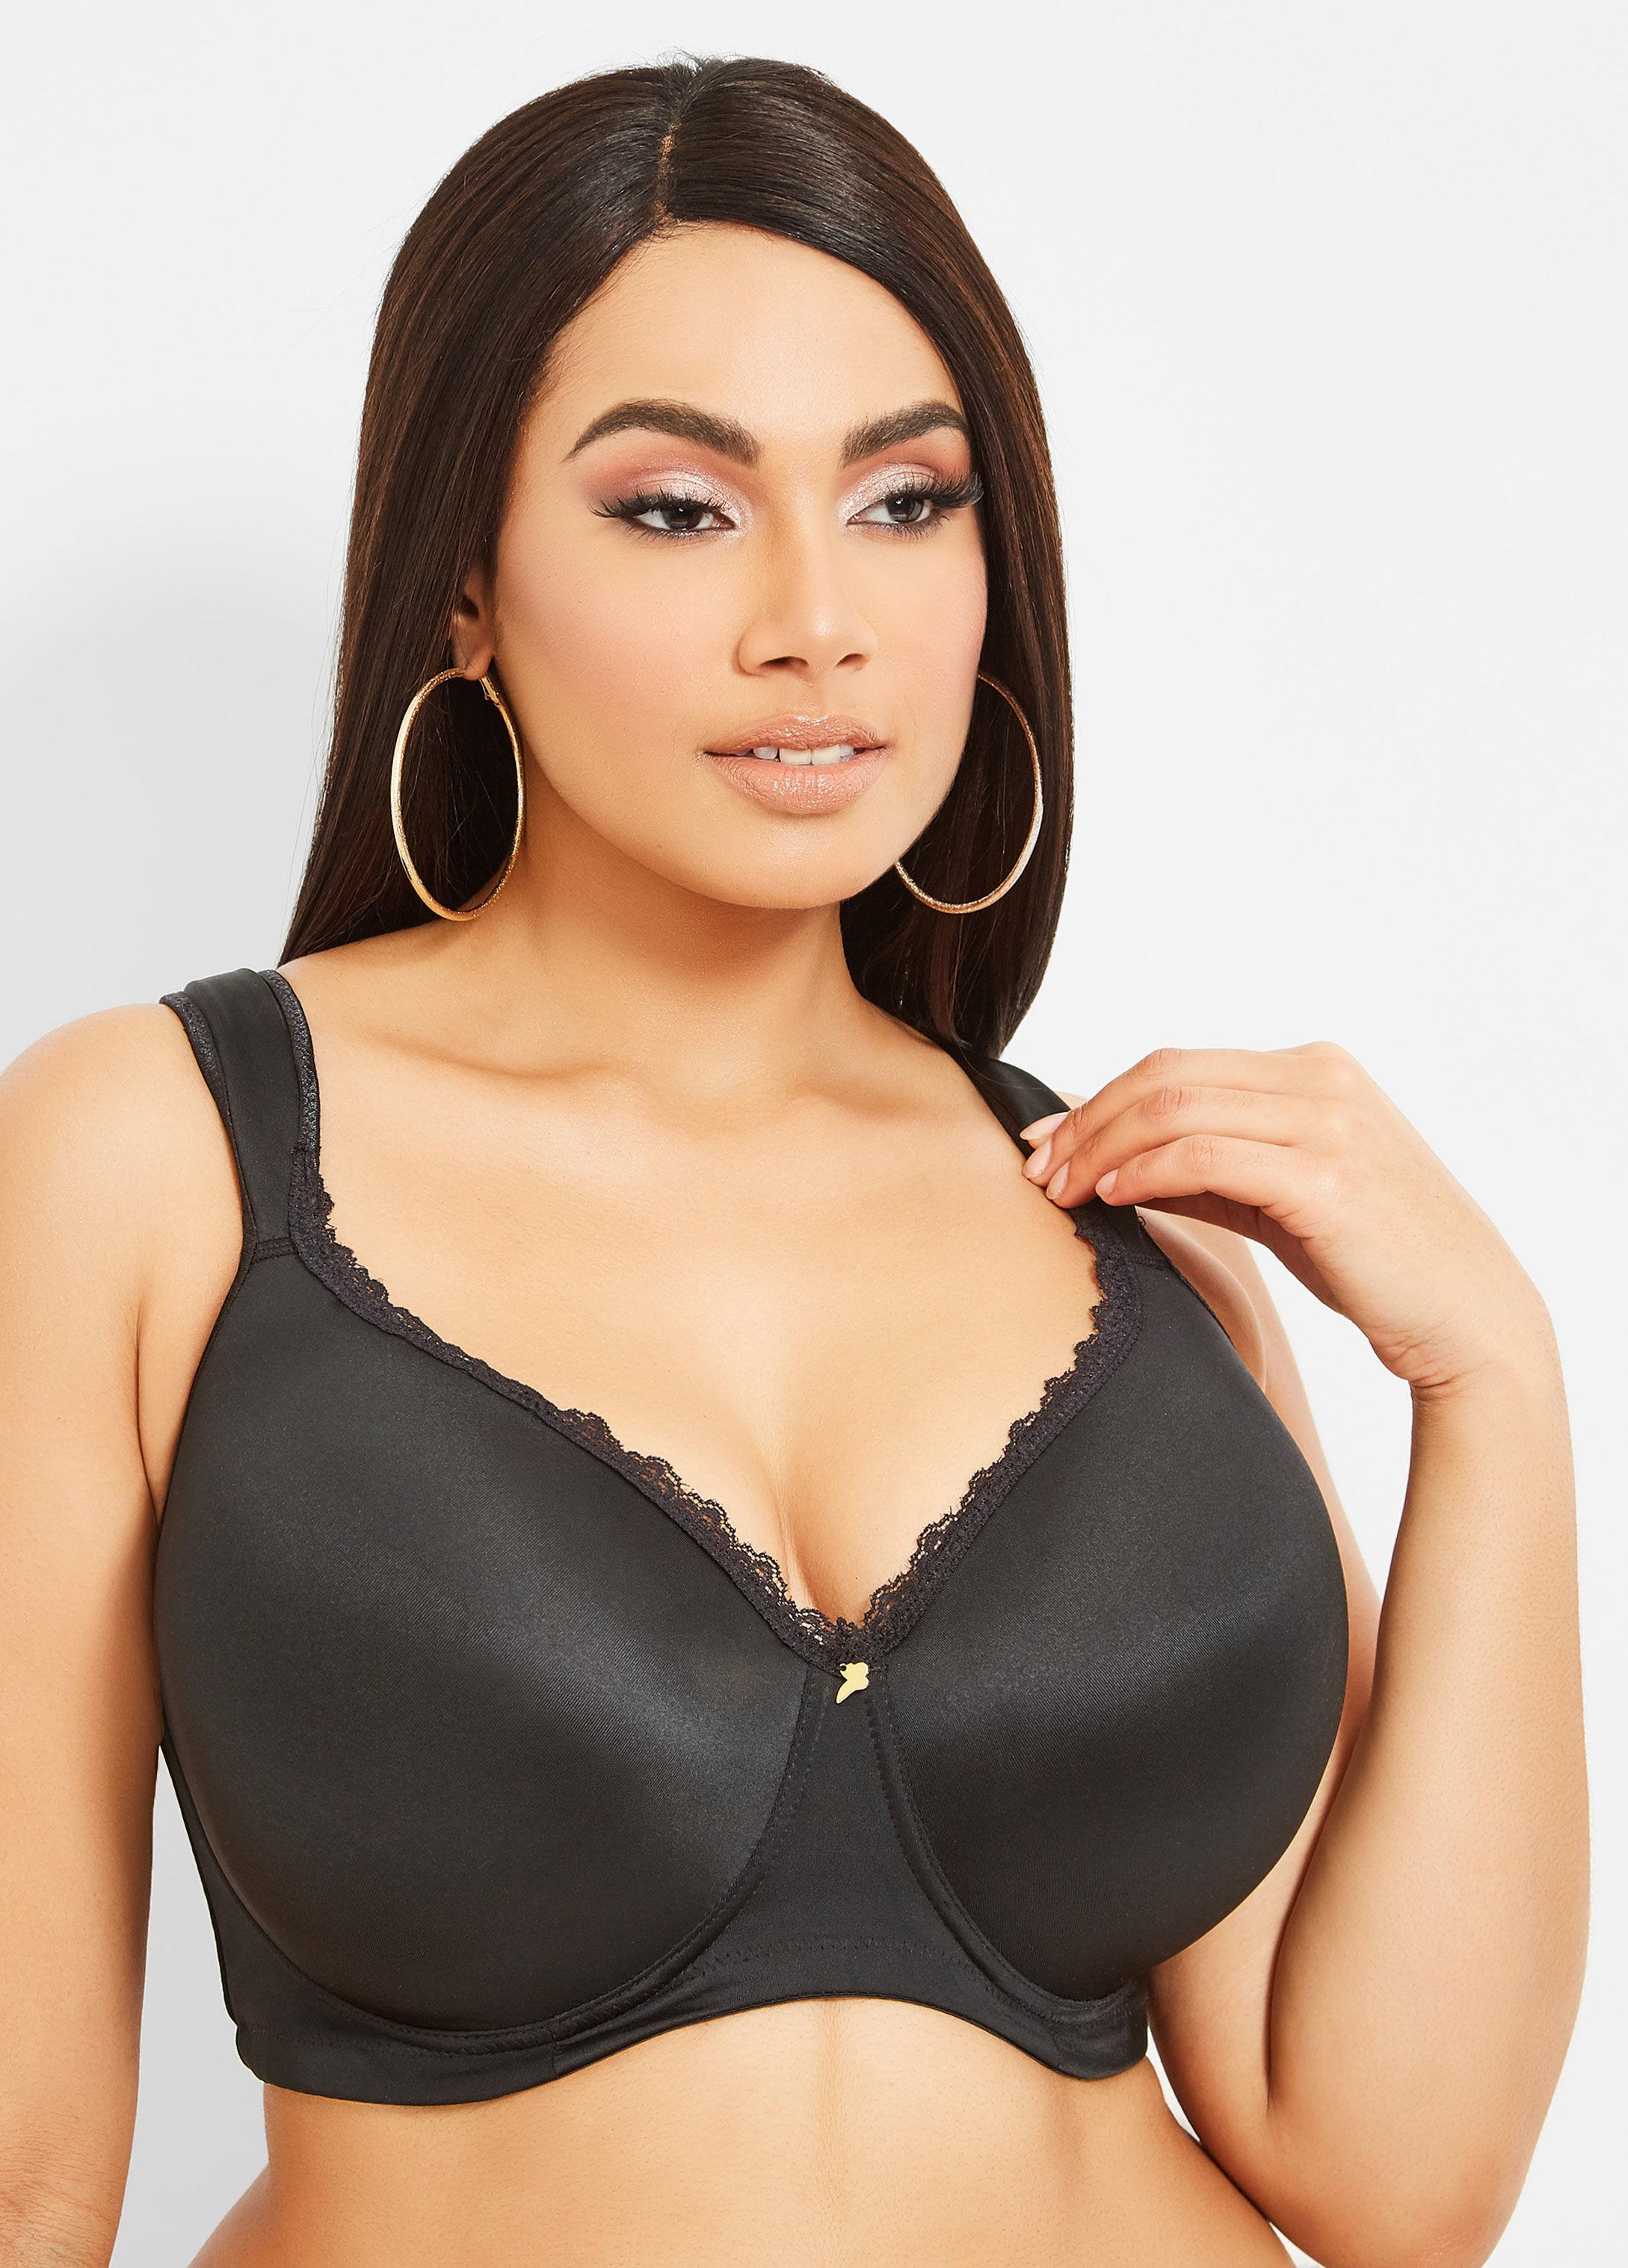 d3a7eb12708 Lyst - Ashley Stewart Plus Size Full Coverage Butterfly Bra in Black ...